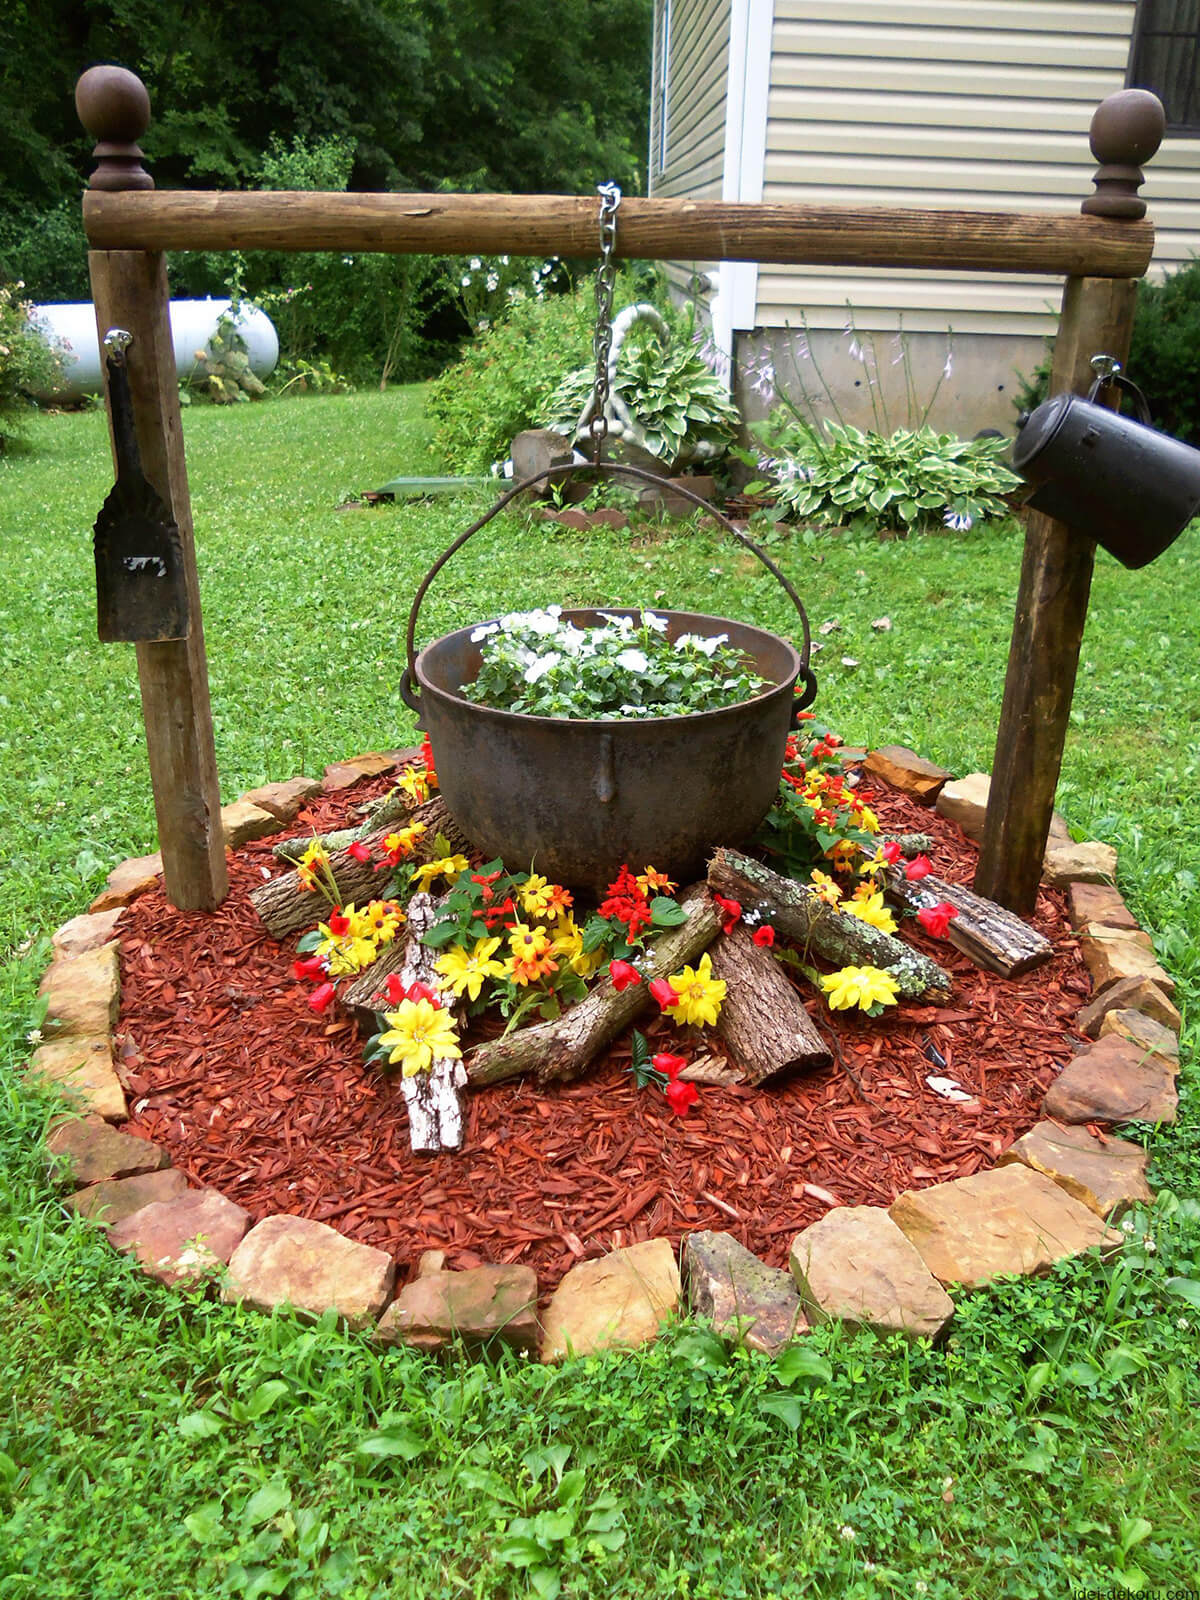 8 Best Flower Bed Ideas (Decorations and Designs) for 8